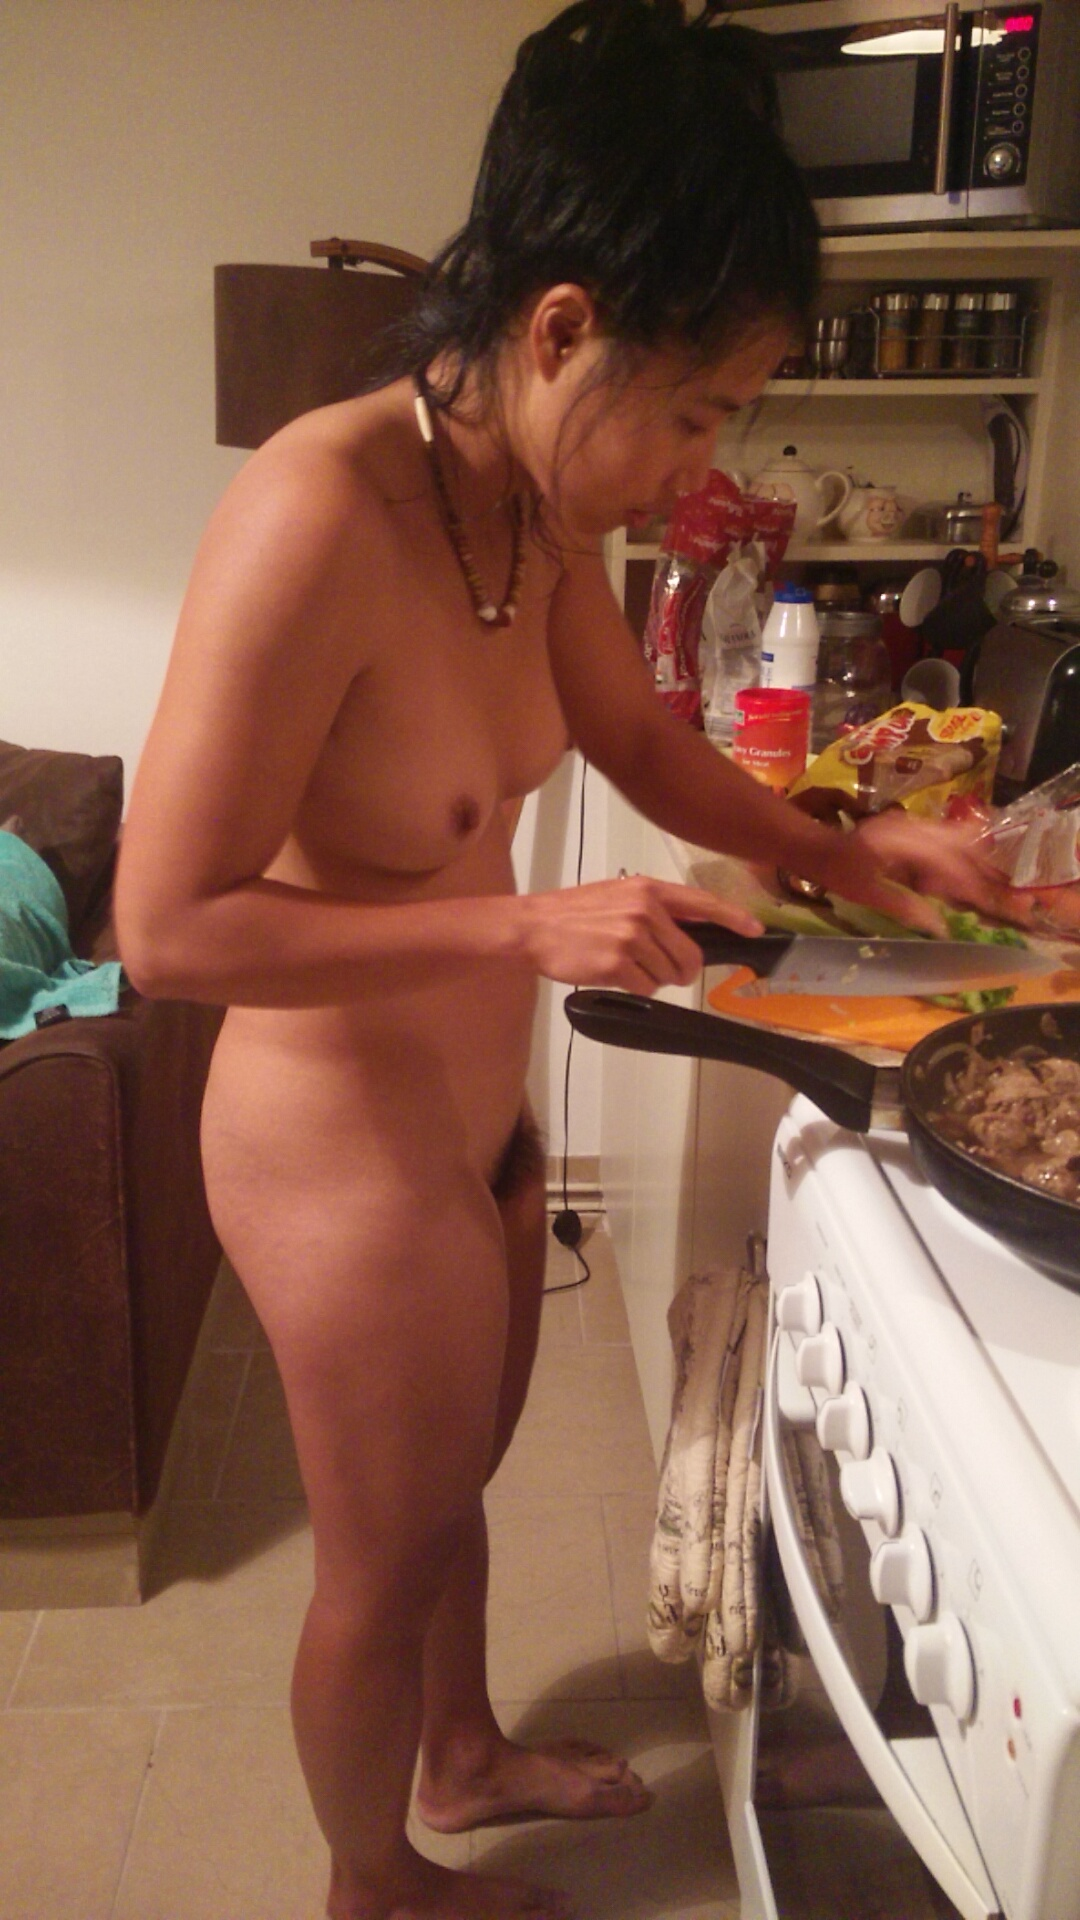 Blonde wife naked cooking